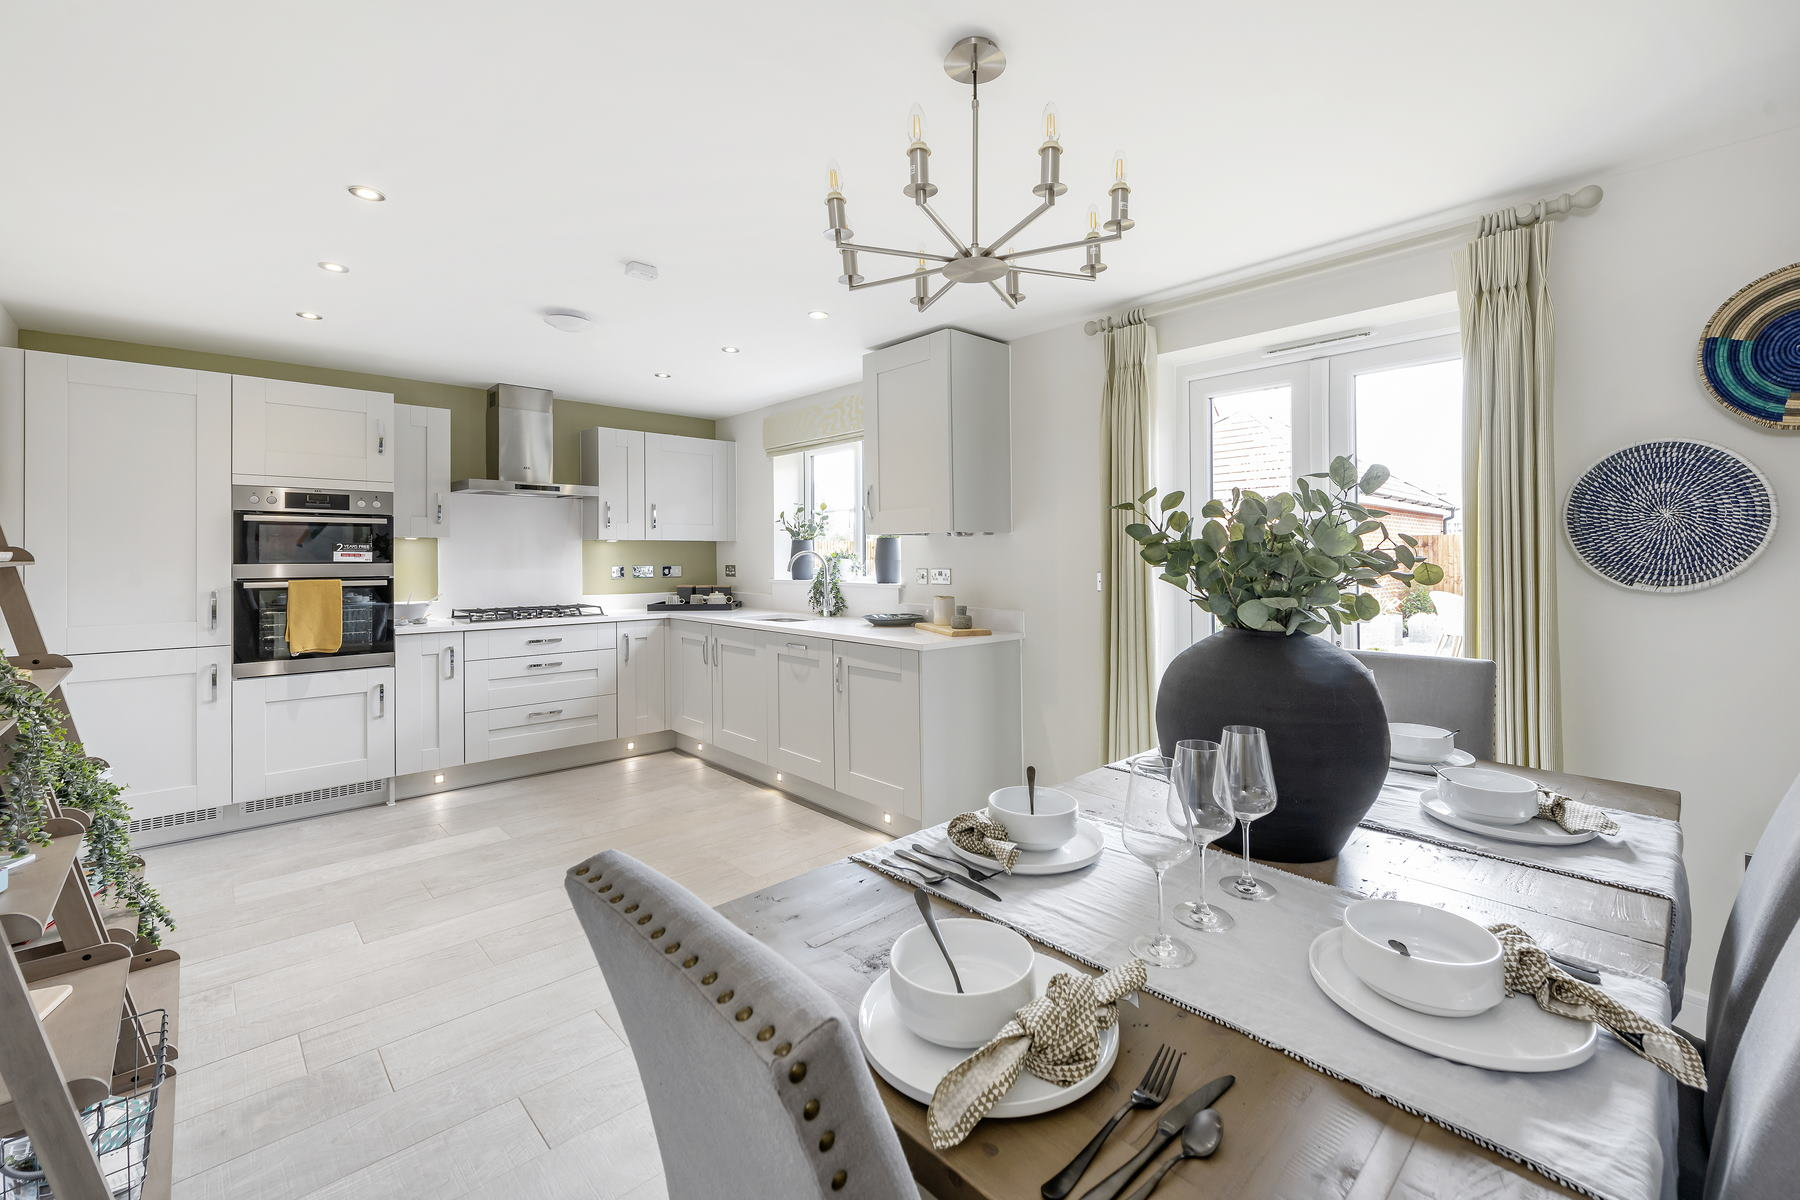 Typical Taylor Wimpey home - kitchen and dining area